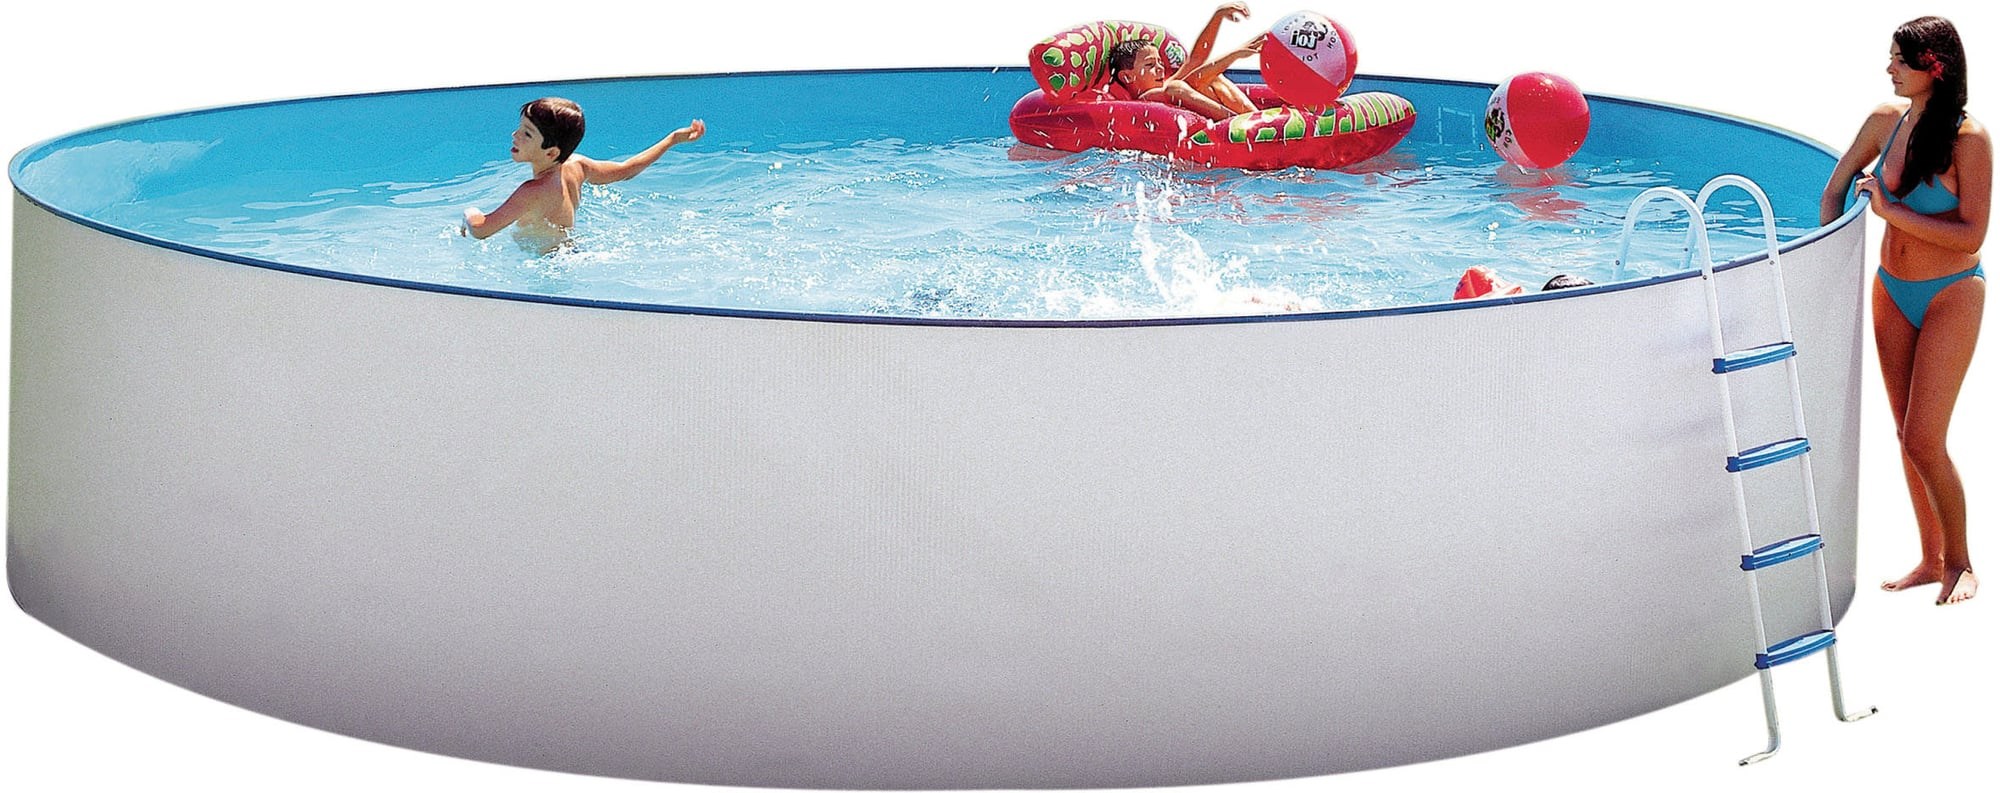 Hobby Pool Sandfilteranlage Steinbach Nuovo Pool Rund Ø 350 X 120 Cm Pools Shop